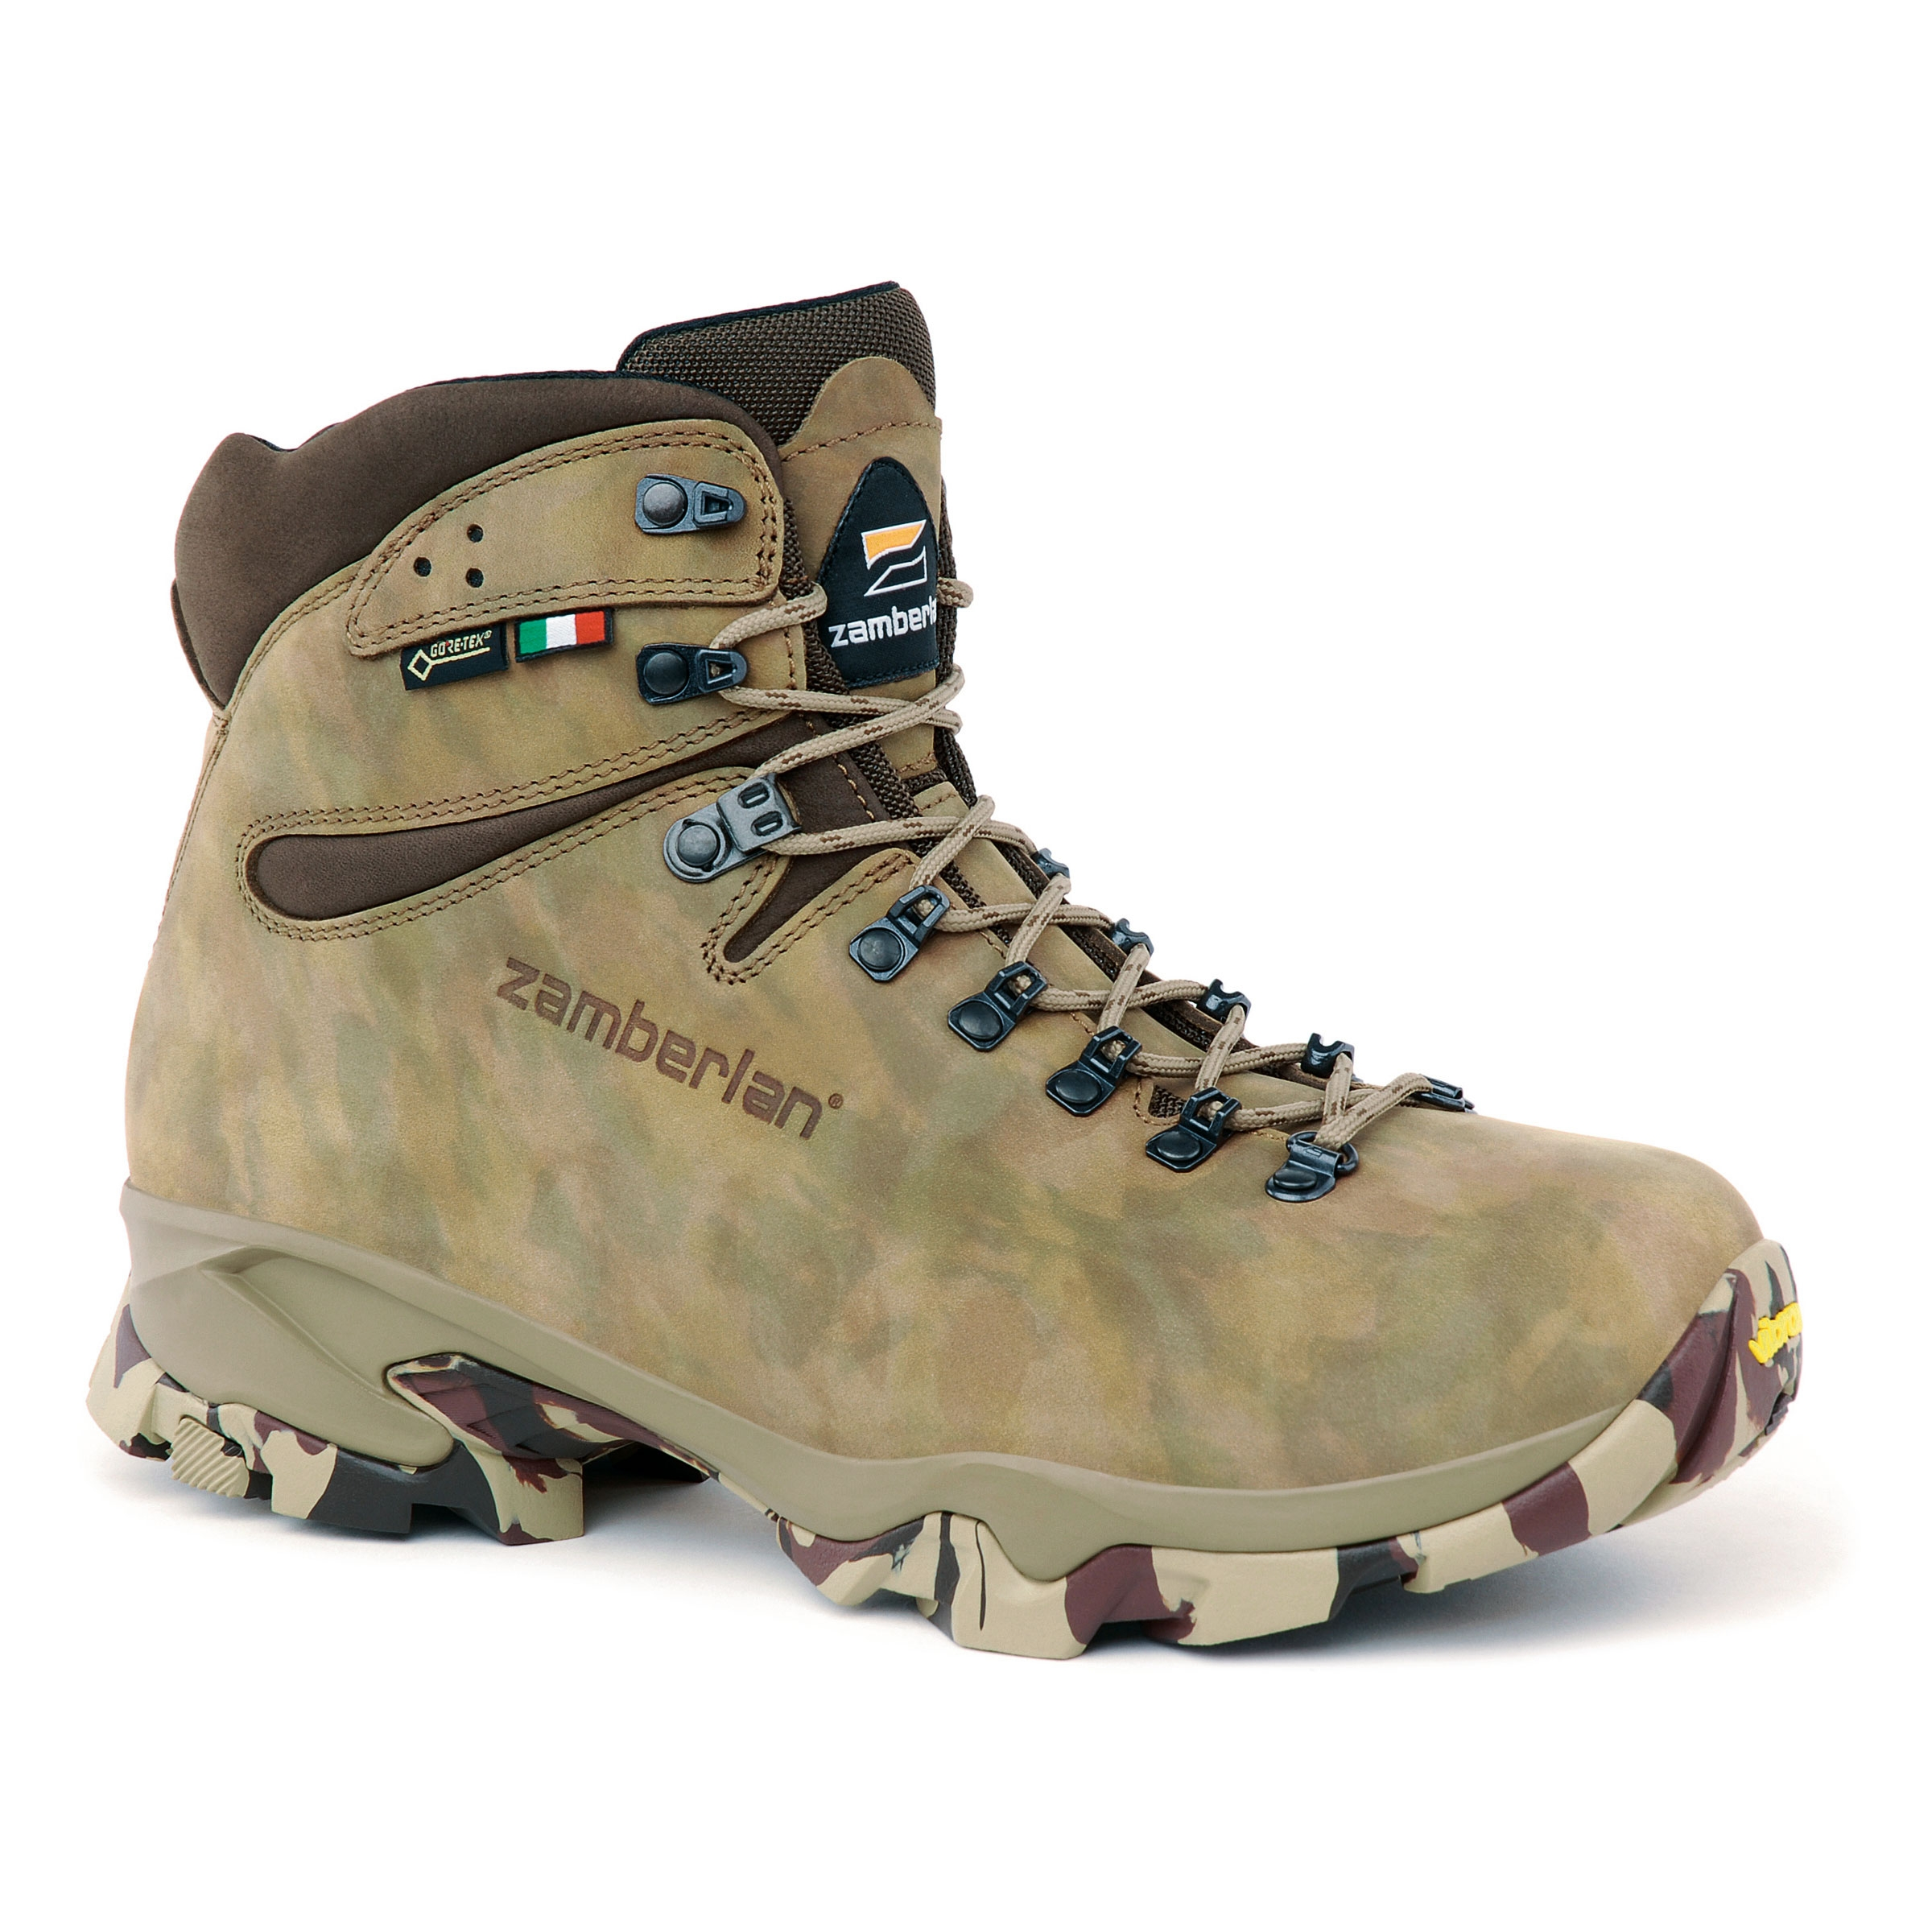 1013 LEOPARD GTX® WL   -   Men's Hunting & Hiking Boots   -   Camouflage